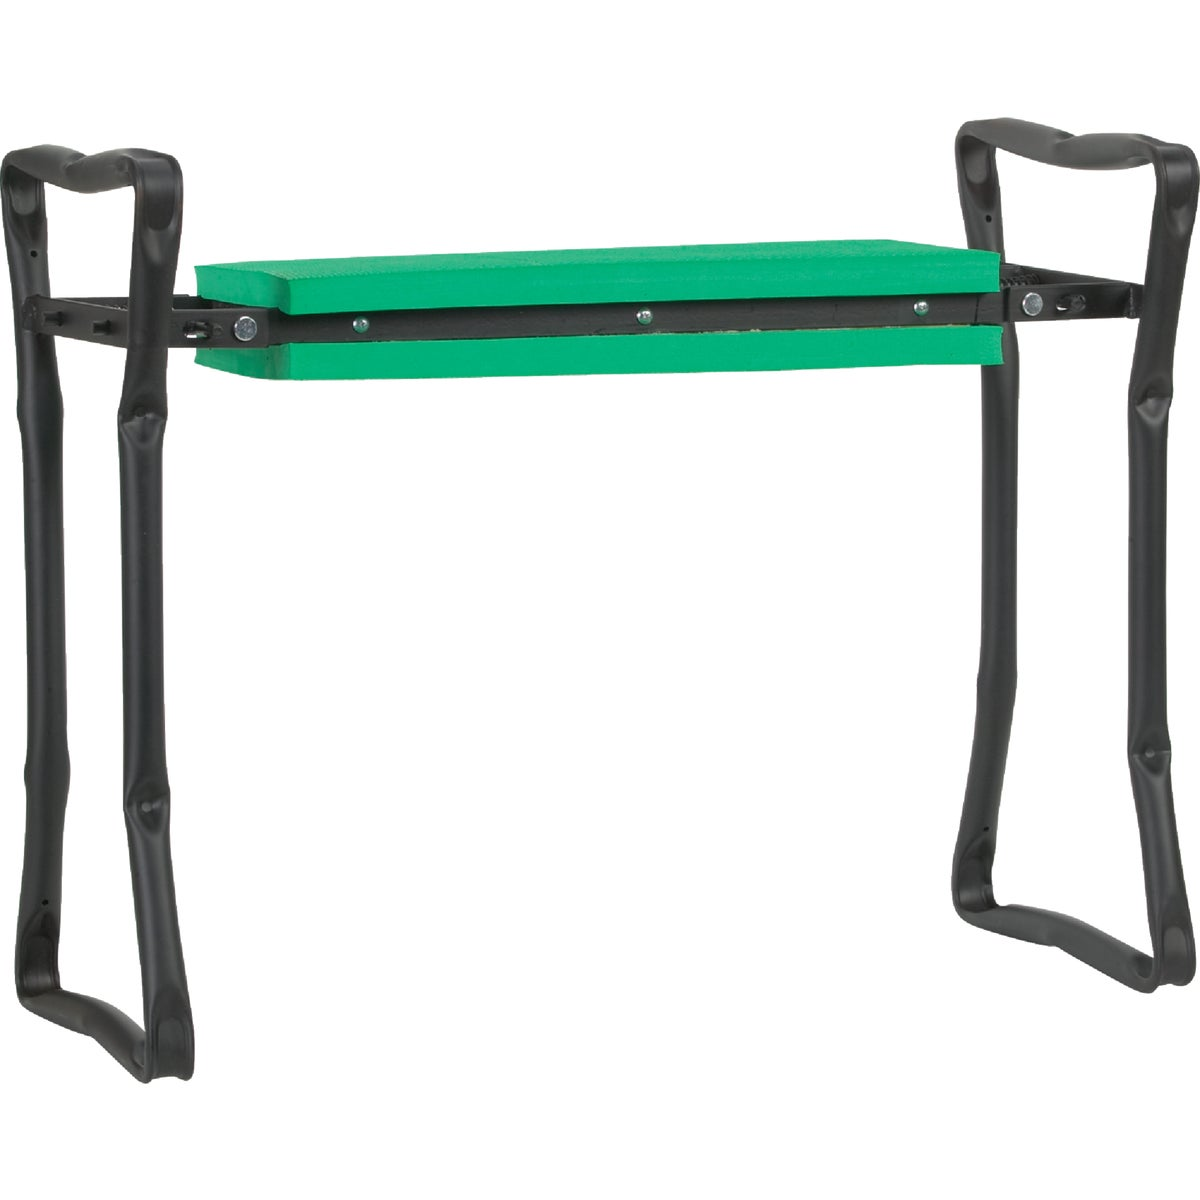 GARDEN KNEELER & SEAT - GKS-2 by Lewis Lifetime Tools